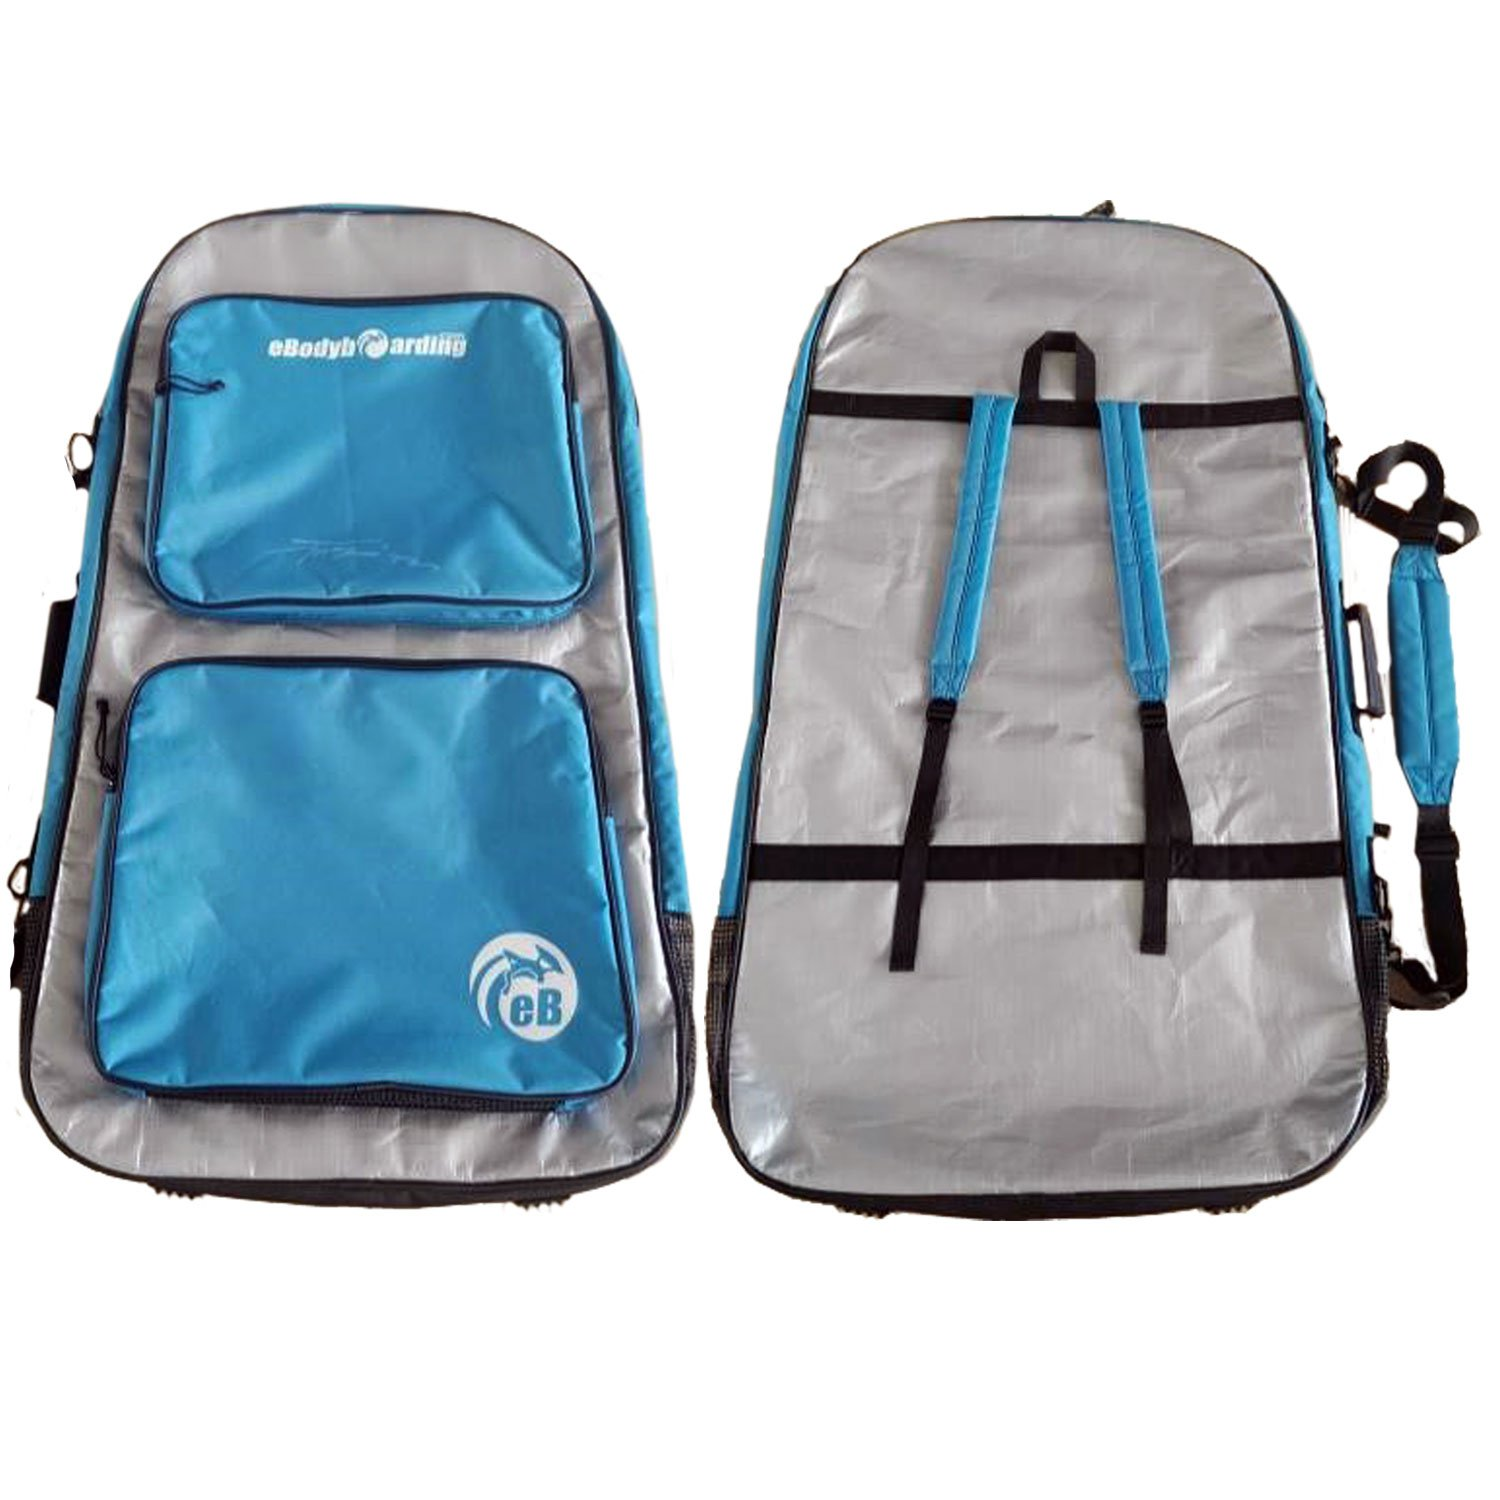 eBodyboarding Double Padded Reflector Wet/Dry Bag - Silver with Blue Steel Pockets